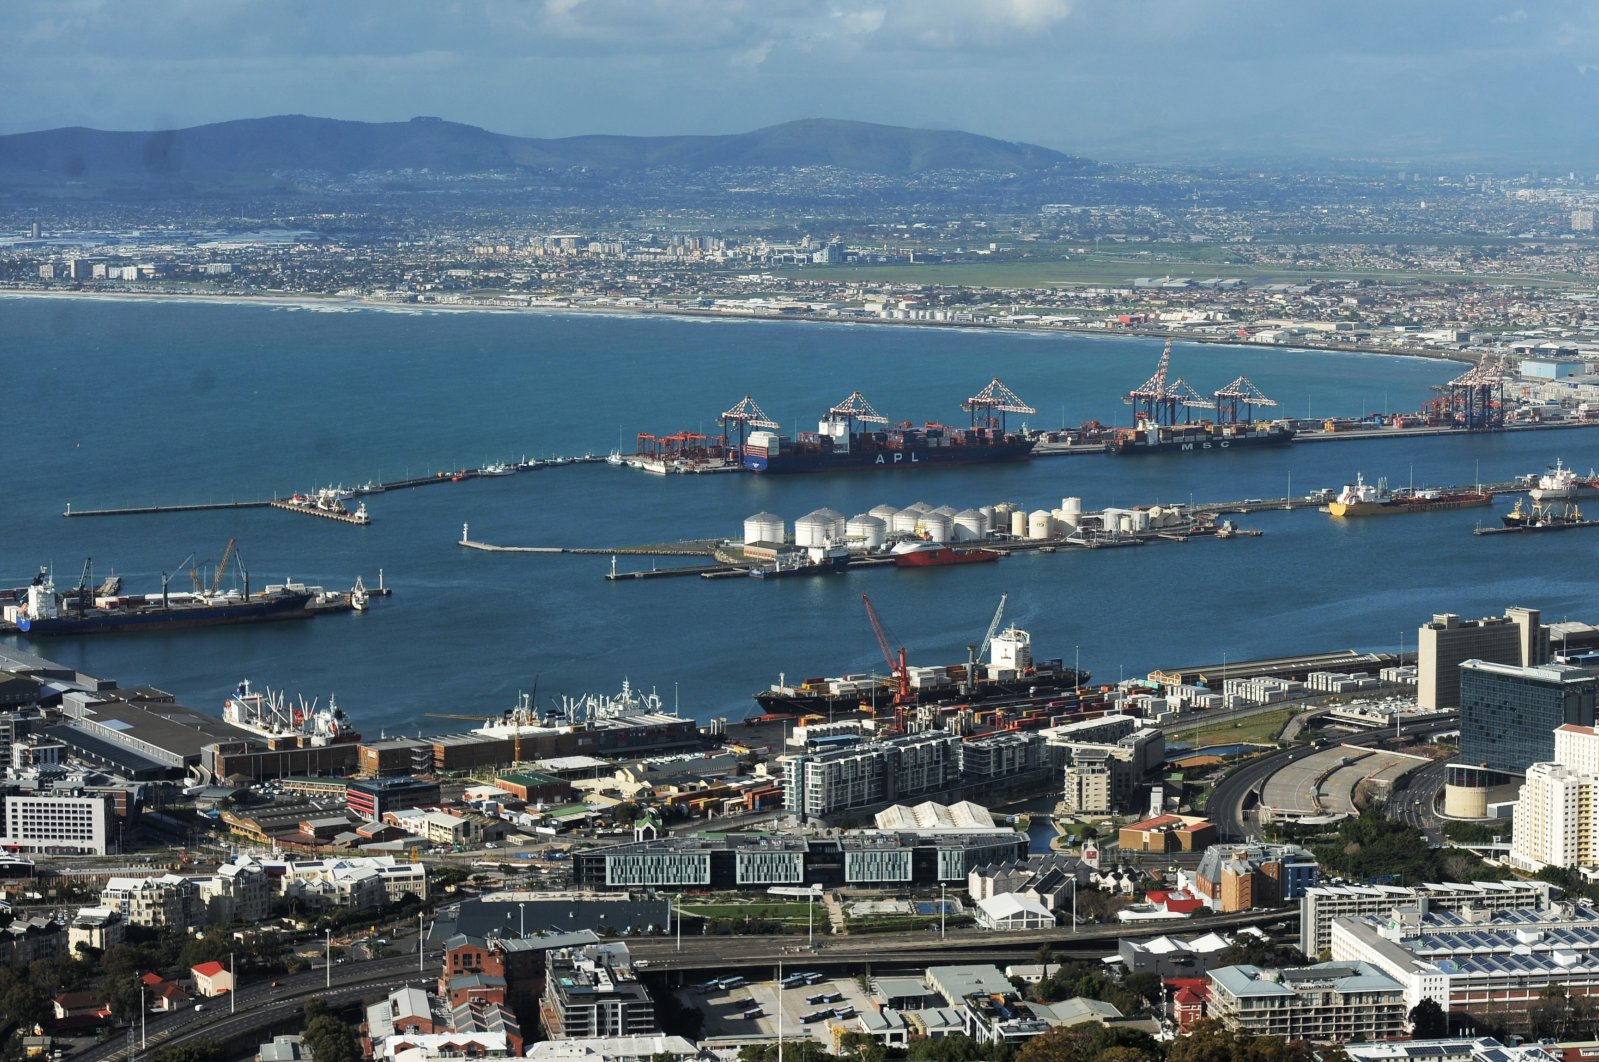 Lots of activities in and around the Port of Cape Town indicate that the import and export trade in picking up, in Cape Town, South Africa, Aug. 11, 2020. (Reuters Photo)